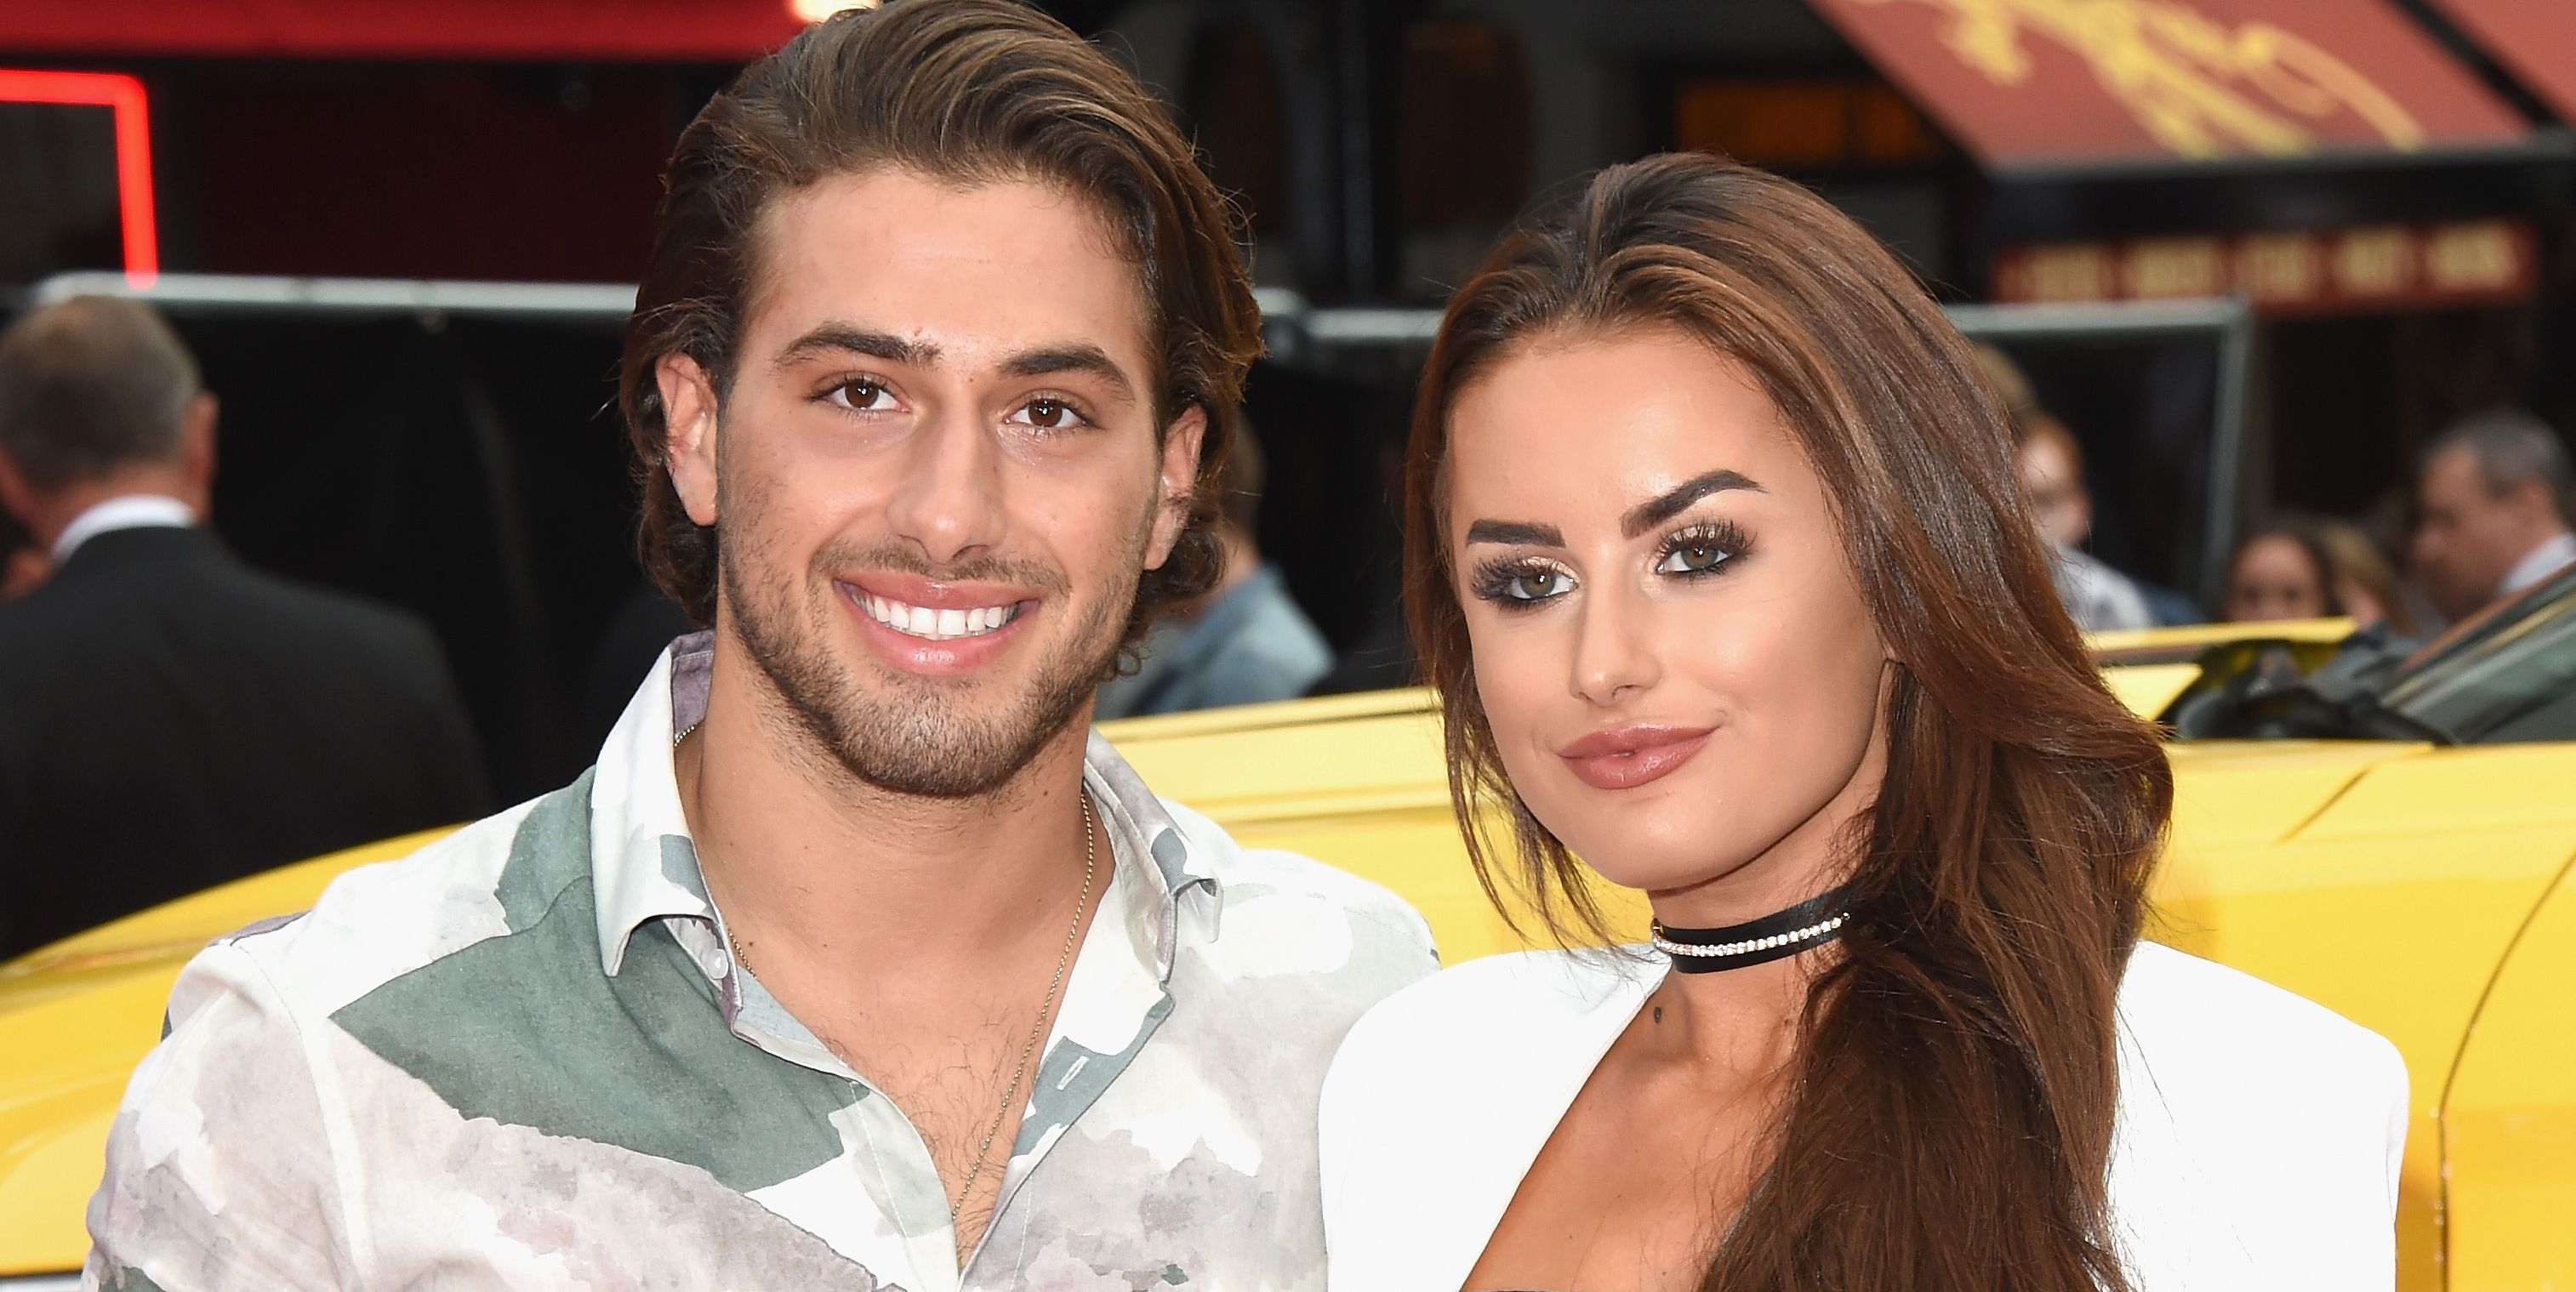 Love Island's Kem and Amber break their silence on split for the first time